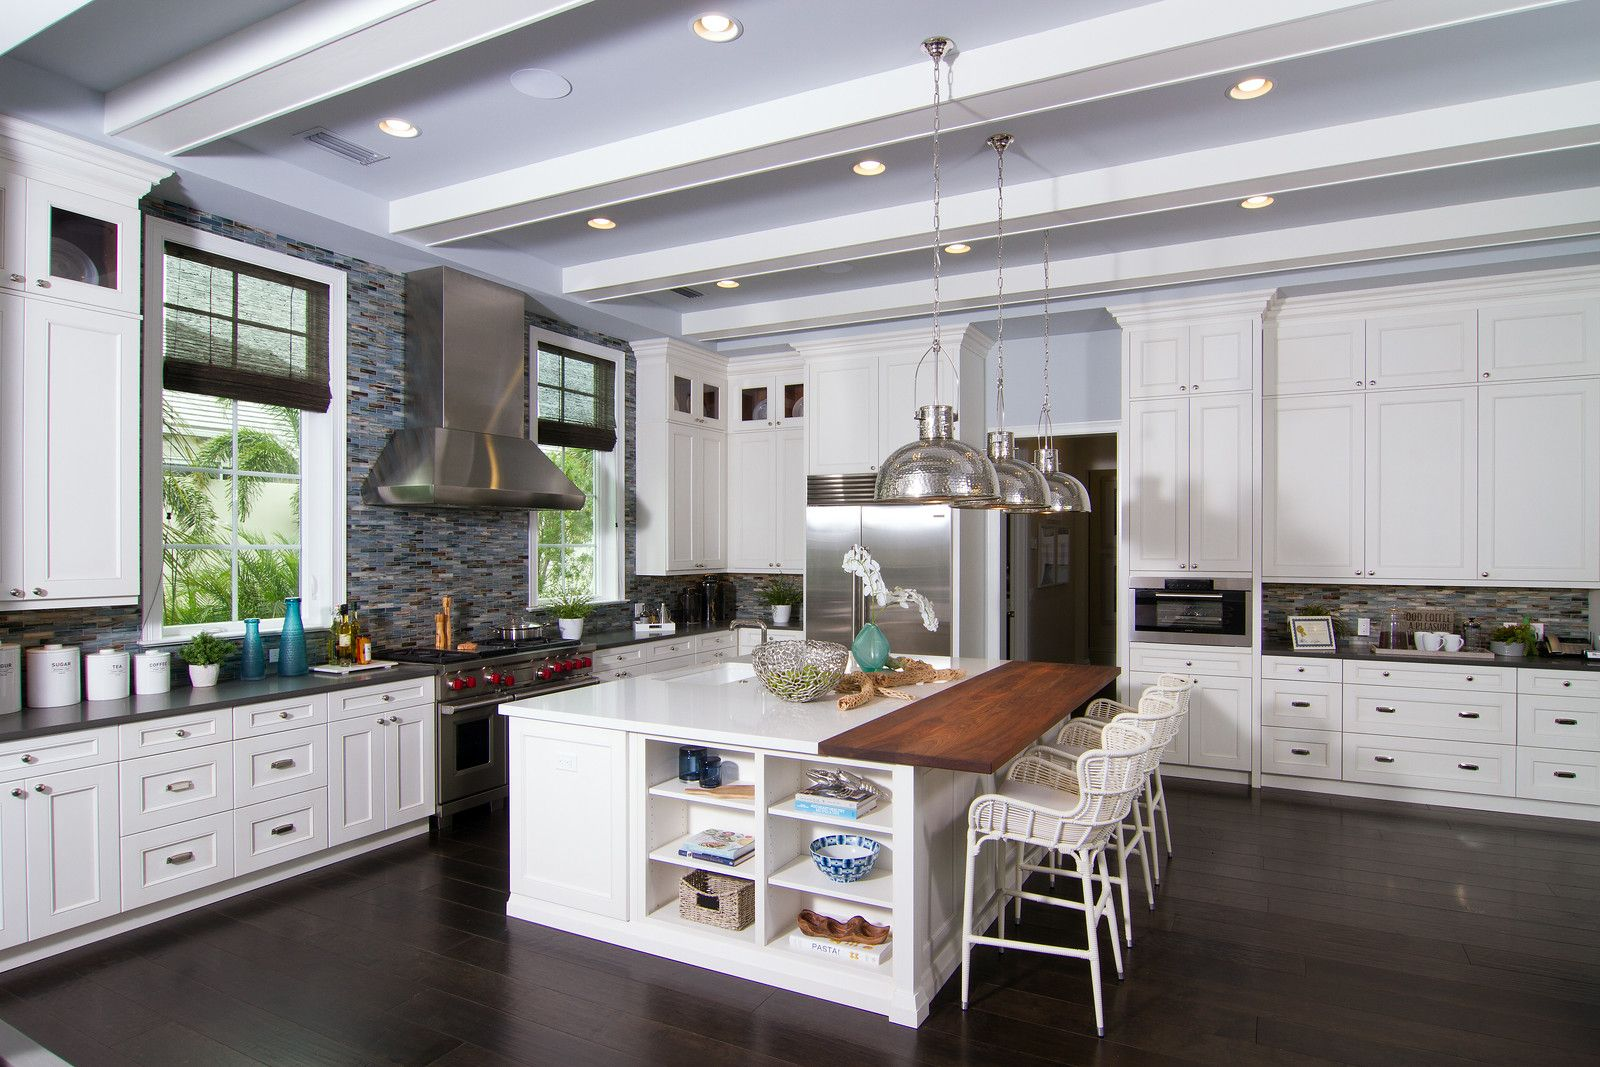 Pin By Mccabinet Inc On Mccabinet Mcprojects Custom Cabinets Cool Kitchens Kitchens Bathrooms